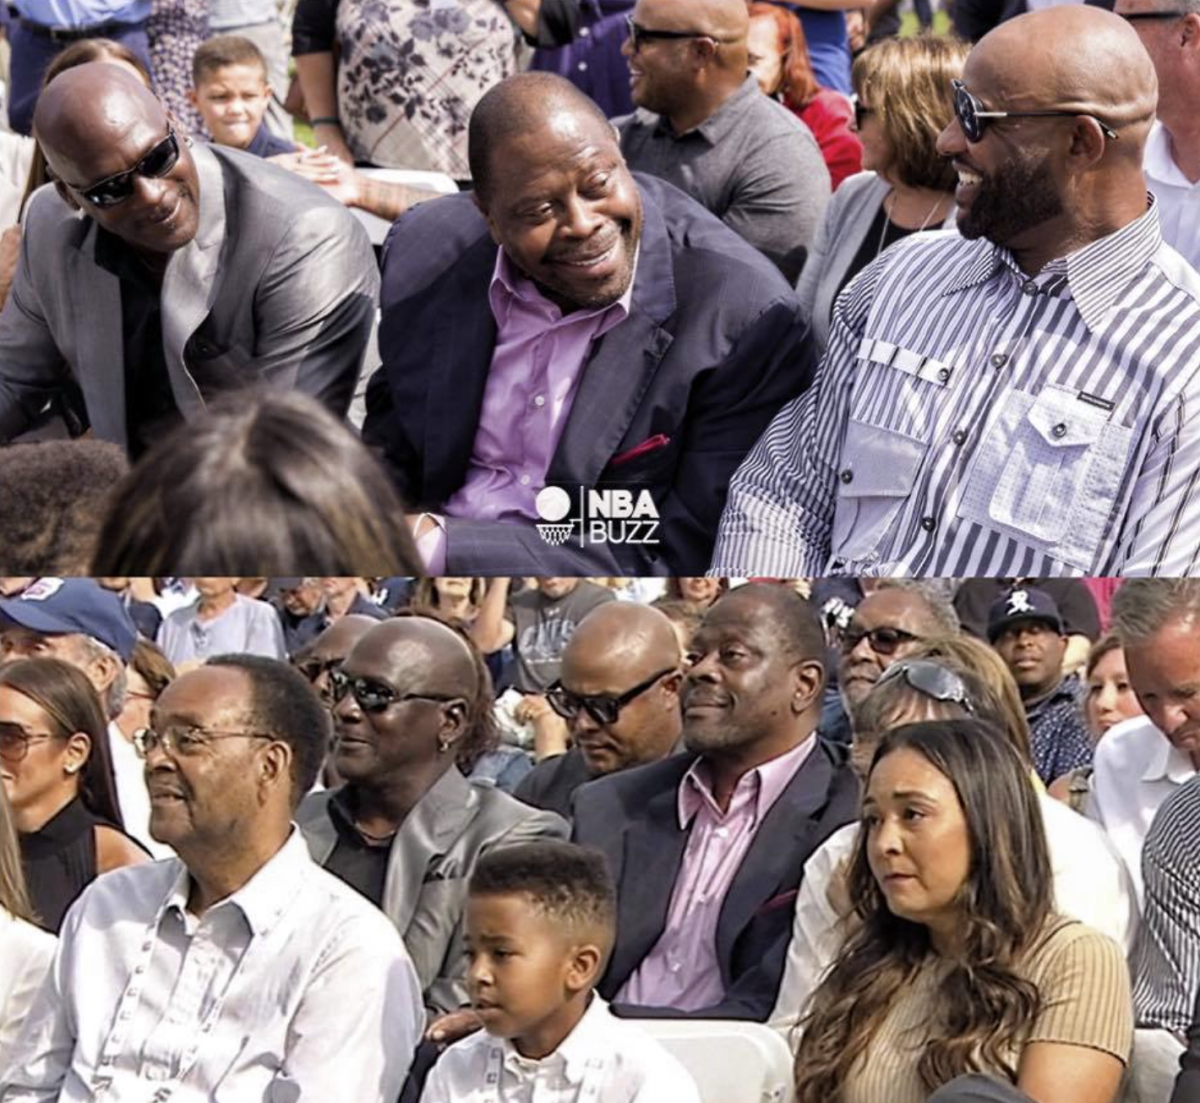 """Michael Jordan Attends Derek Jeter's Hall Of Fame Induction: """"Man That's A Lot Of Star Power Right There"""""""